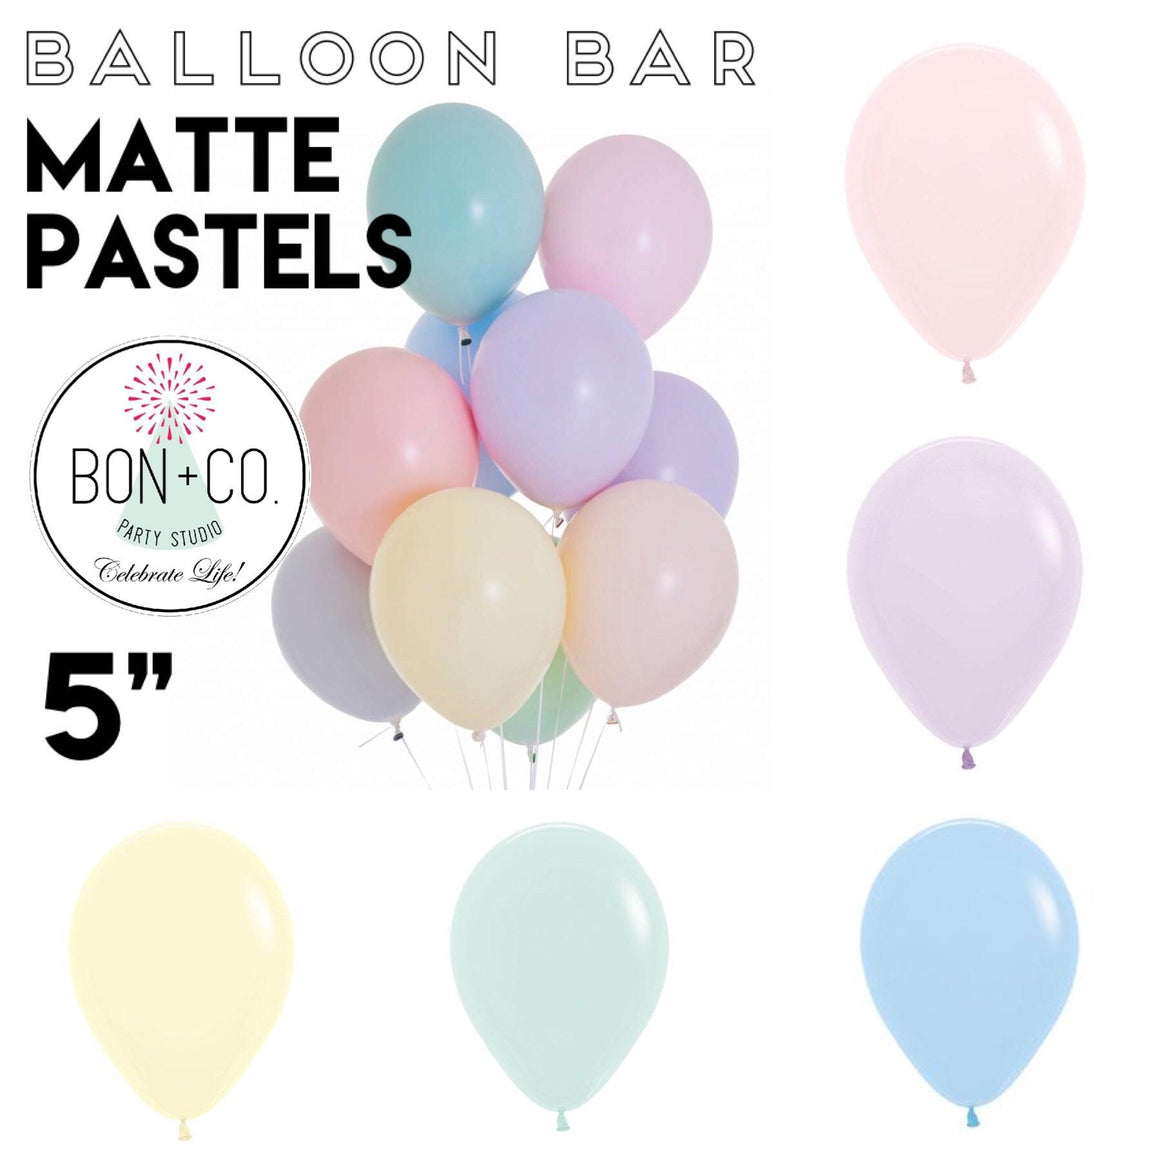 "BALLOON BAR - 5"" MATTE PASTELS, Balloons, Sempertex - Bon + Co. Party Studio"